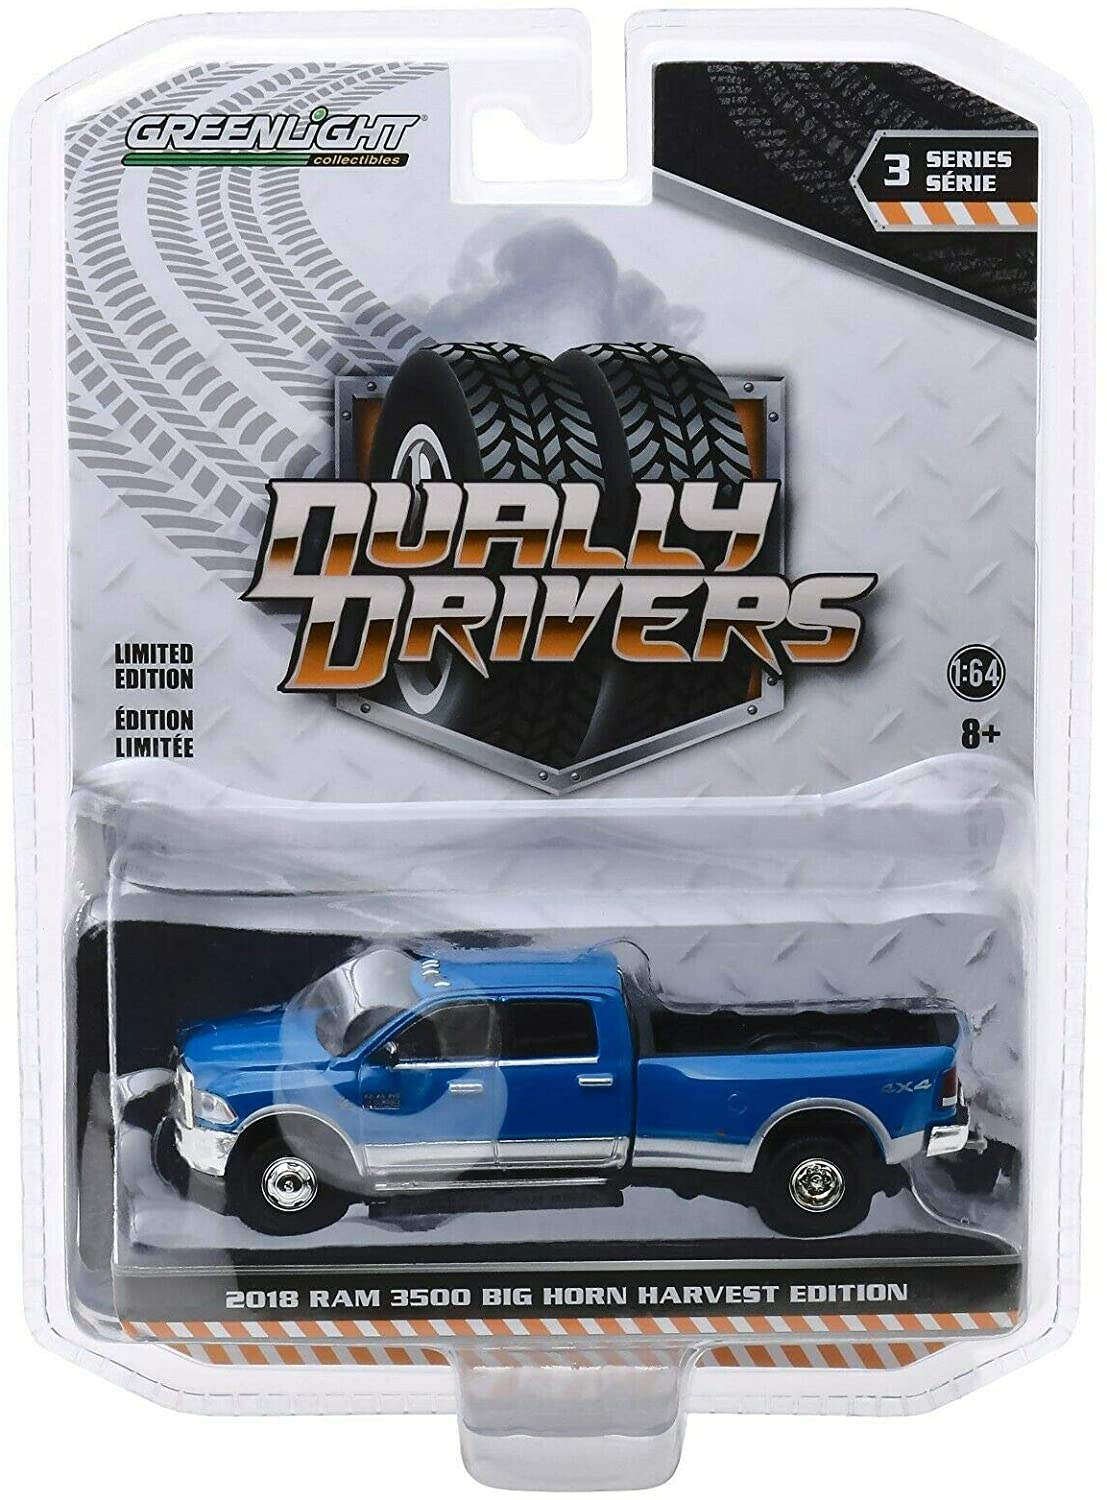 Greenlight 46030-D Dually Drivers Series 3-2018 Ram Harvest Edition Dually - New Holland Blue 1:64 Scale